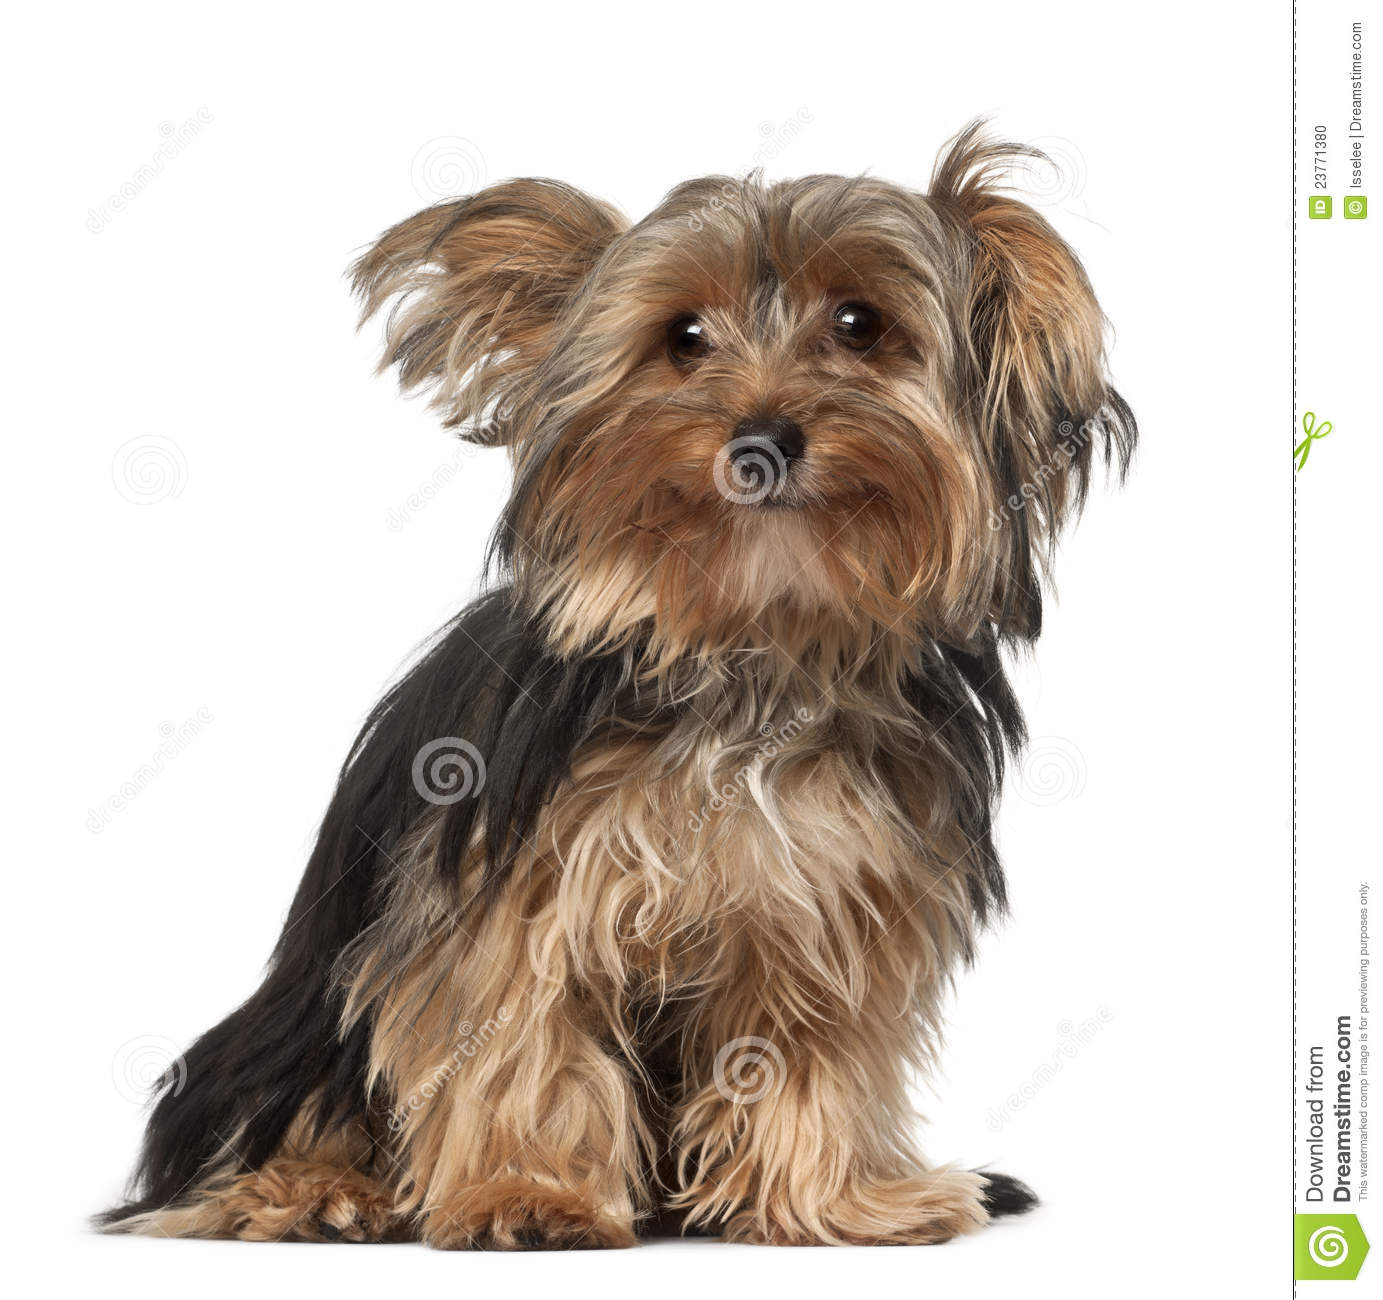 Yorkshire 4 Meses Yorkshire Terrier 8 Months Old Stock Photo Image Of